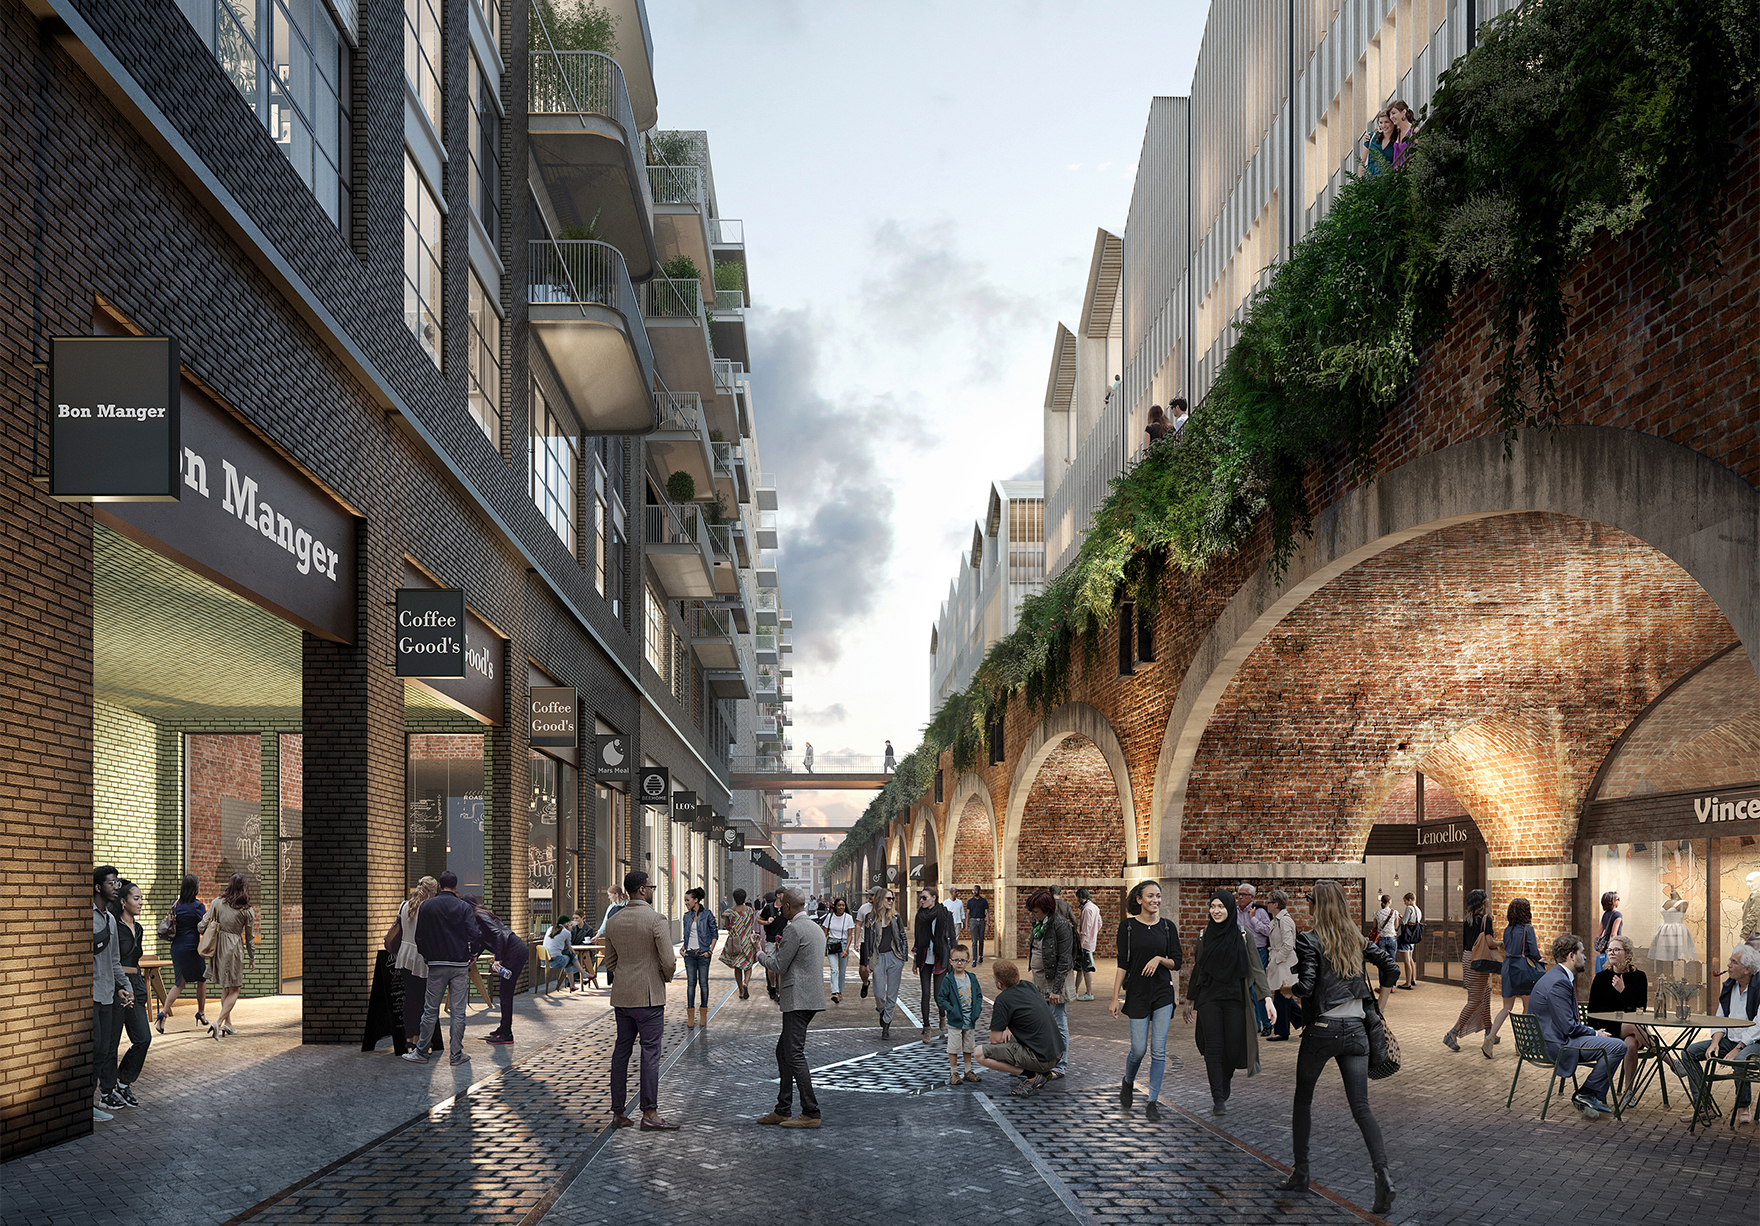 The Goodsyard Mixed Use Masterplan Faulknerbrowns Architects Tracks Residential Hotel Retail Lh